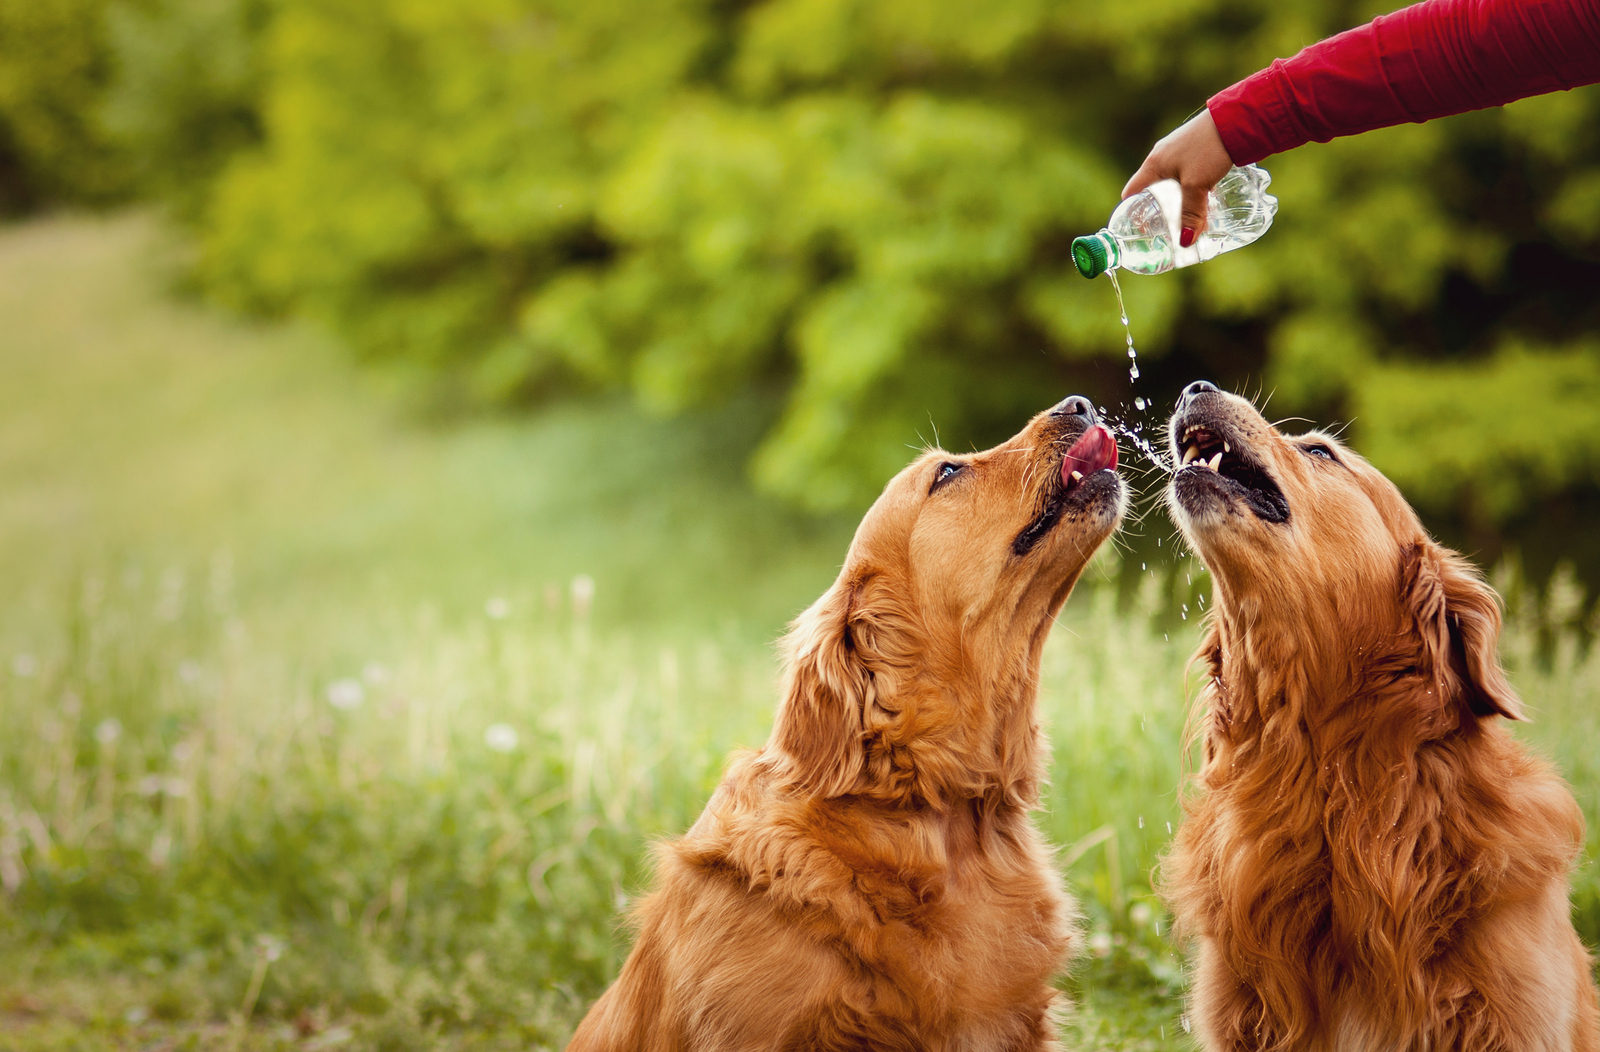 What To Do To Make Your Dog Drink